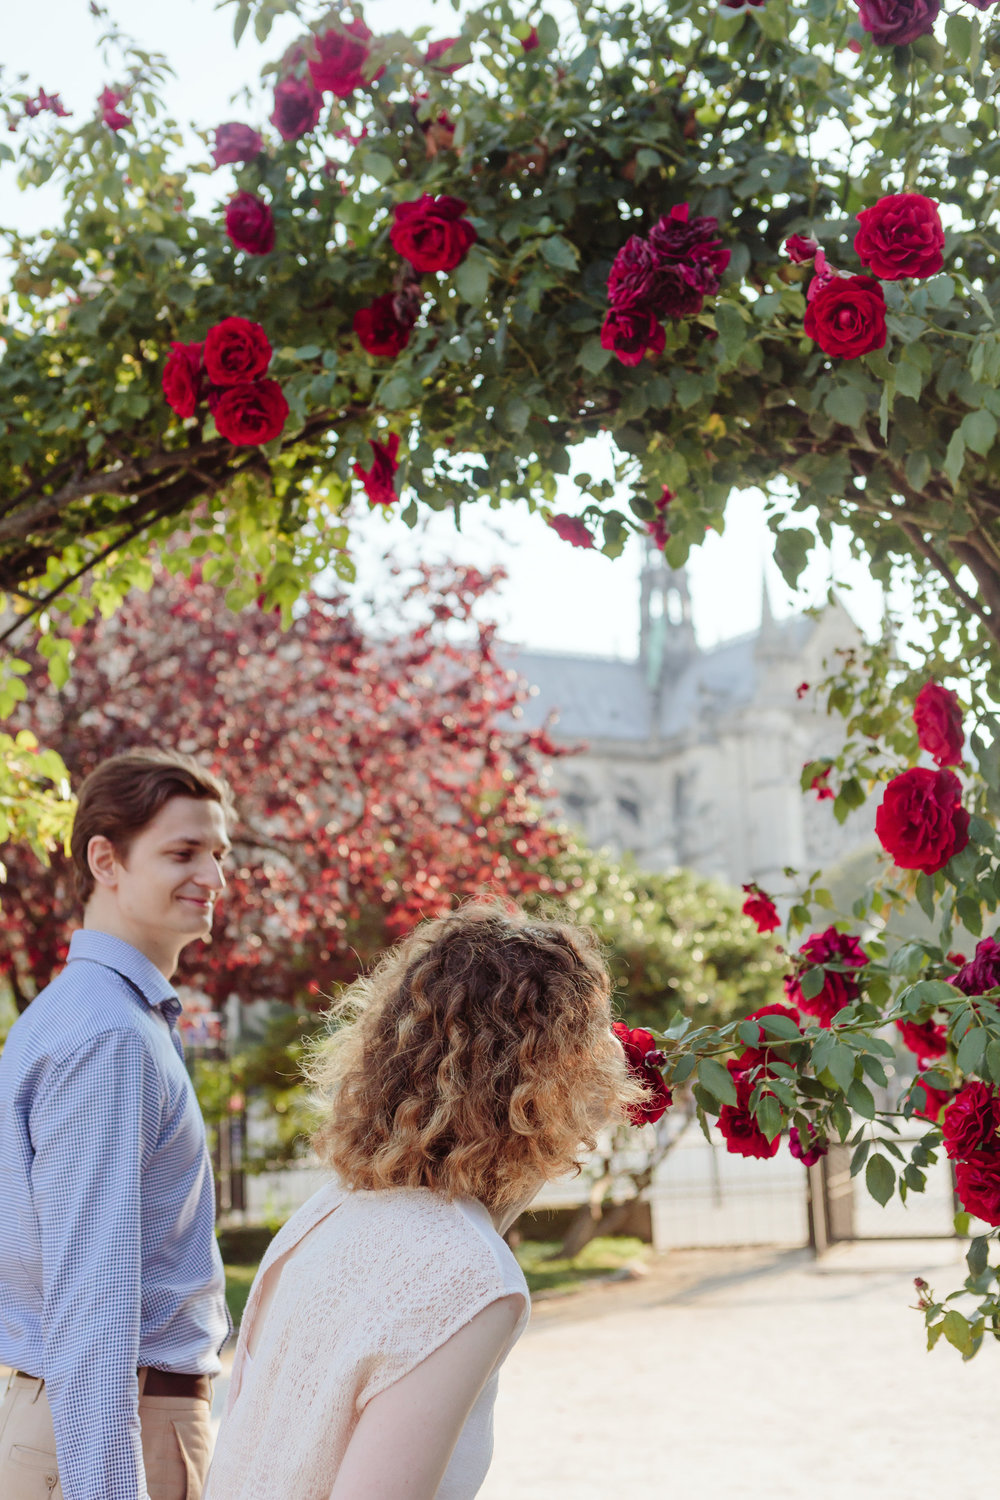 Couple in love by Notre Dame Cathedral smelling roses in a garden in Paris captured by Paris Photographer Federico Guendel IheartParisFr